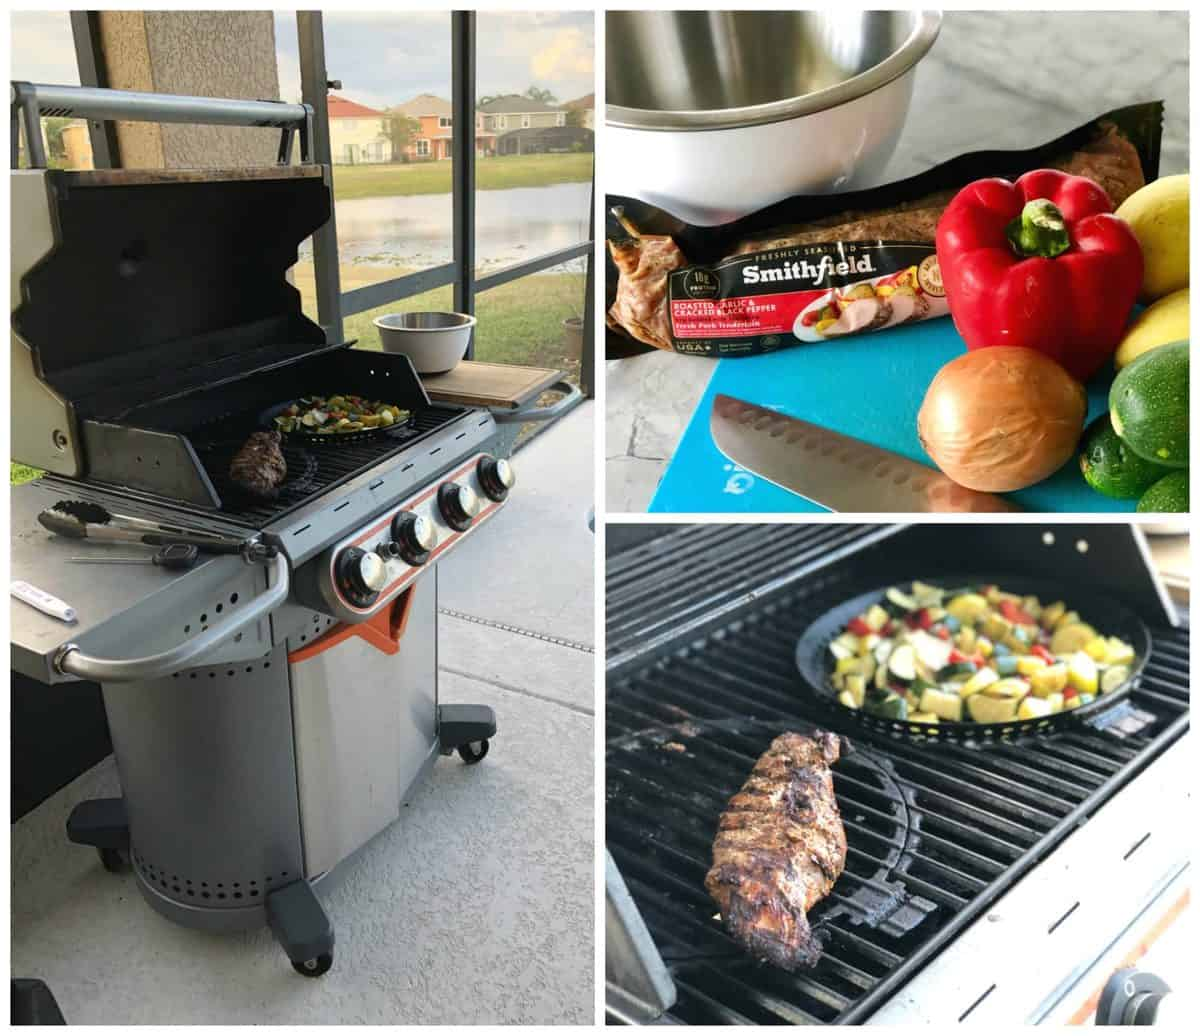 3 photo collage of cooking process for Smithfield Marinated Fresh Pork and veggies on the grill.